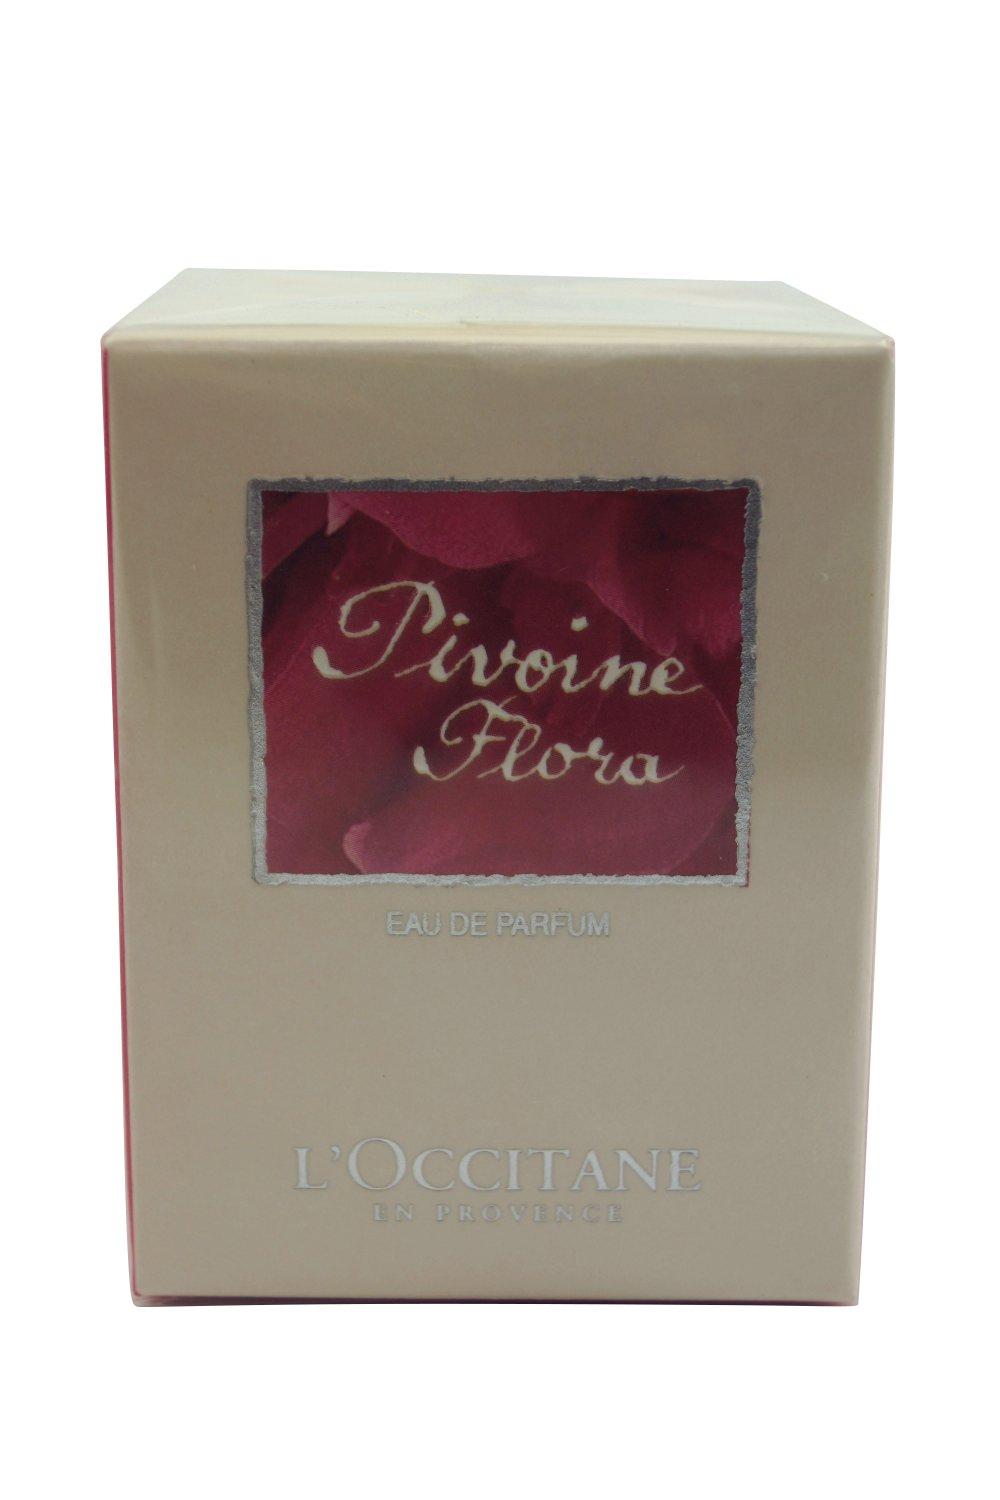 L'Occitane Pivione Flora EDP 50 ml